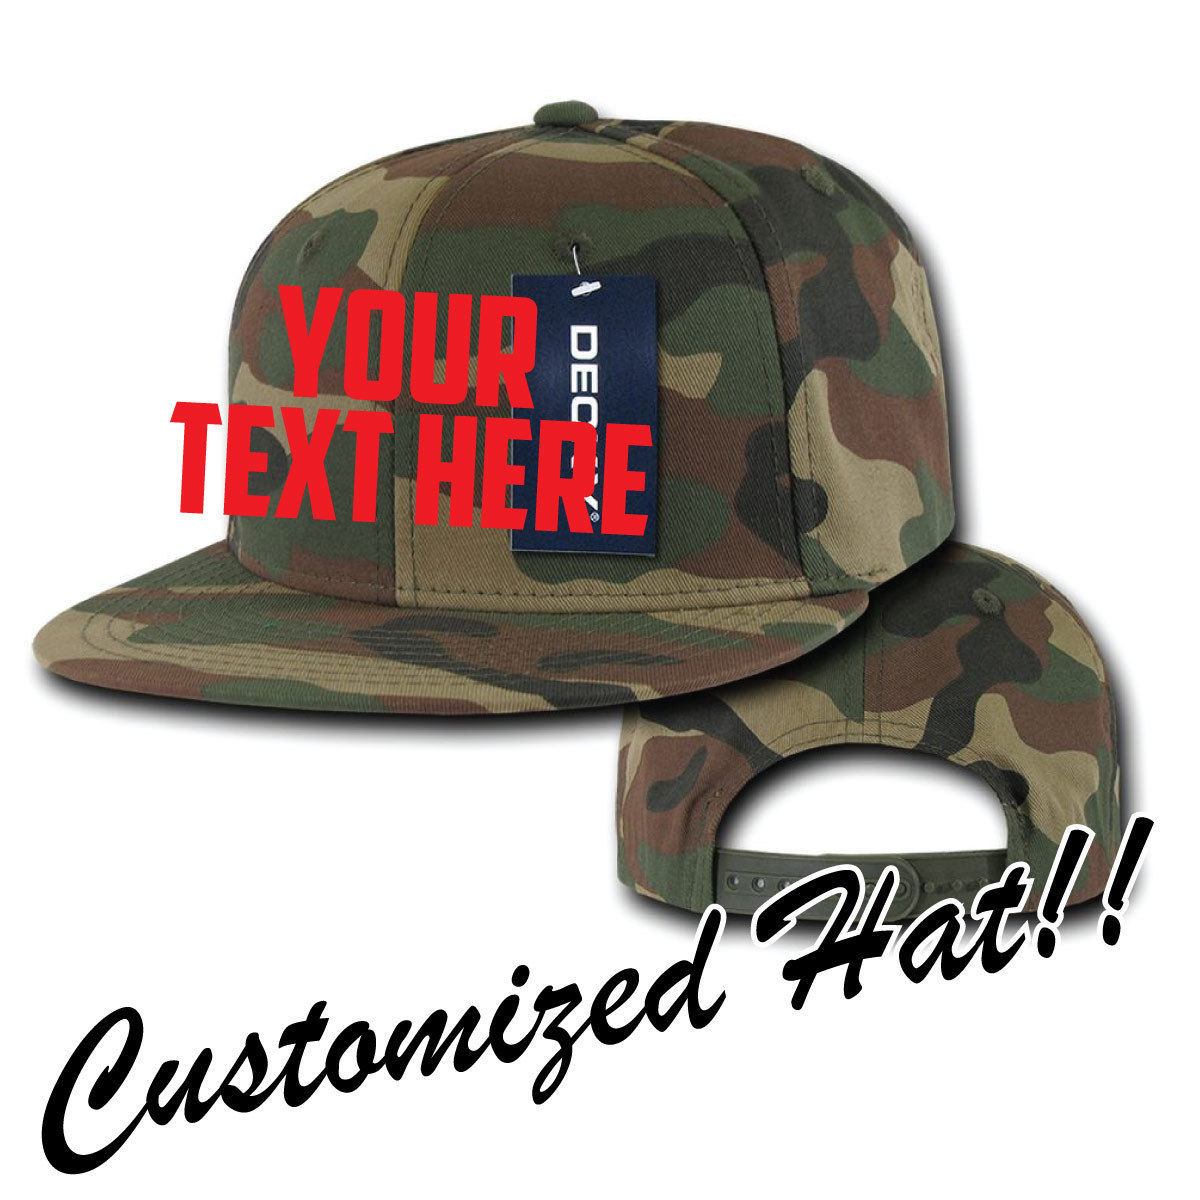 CUSTOM EMBROIDERY Personalized Decky Camo Matching Bottom Snapback Cap 359